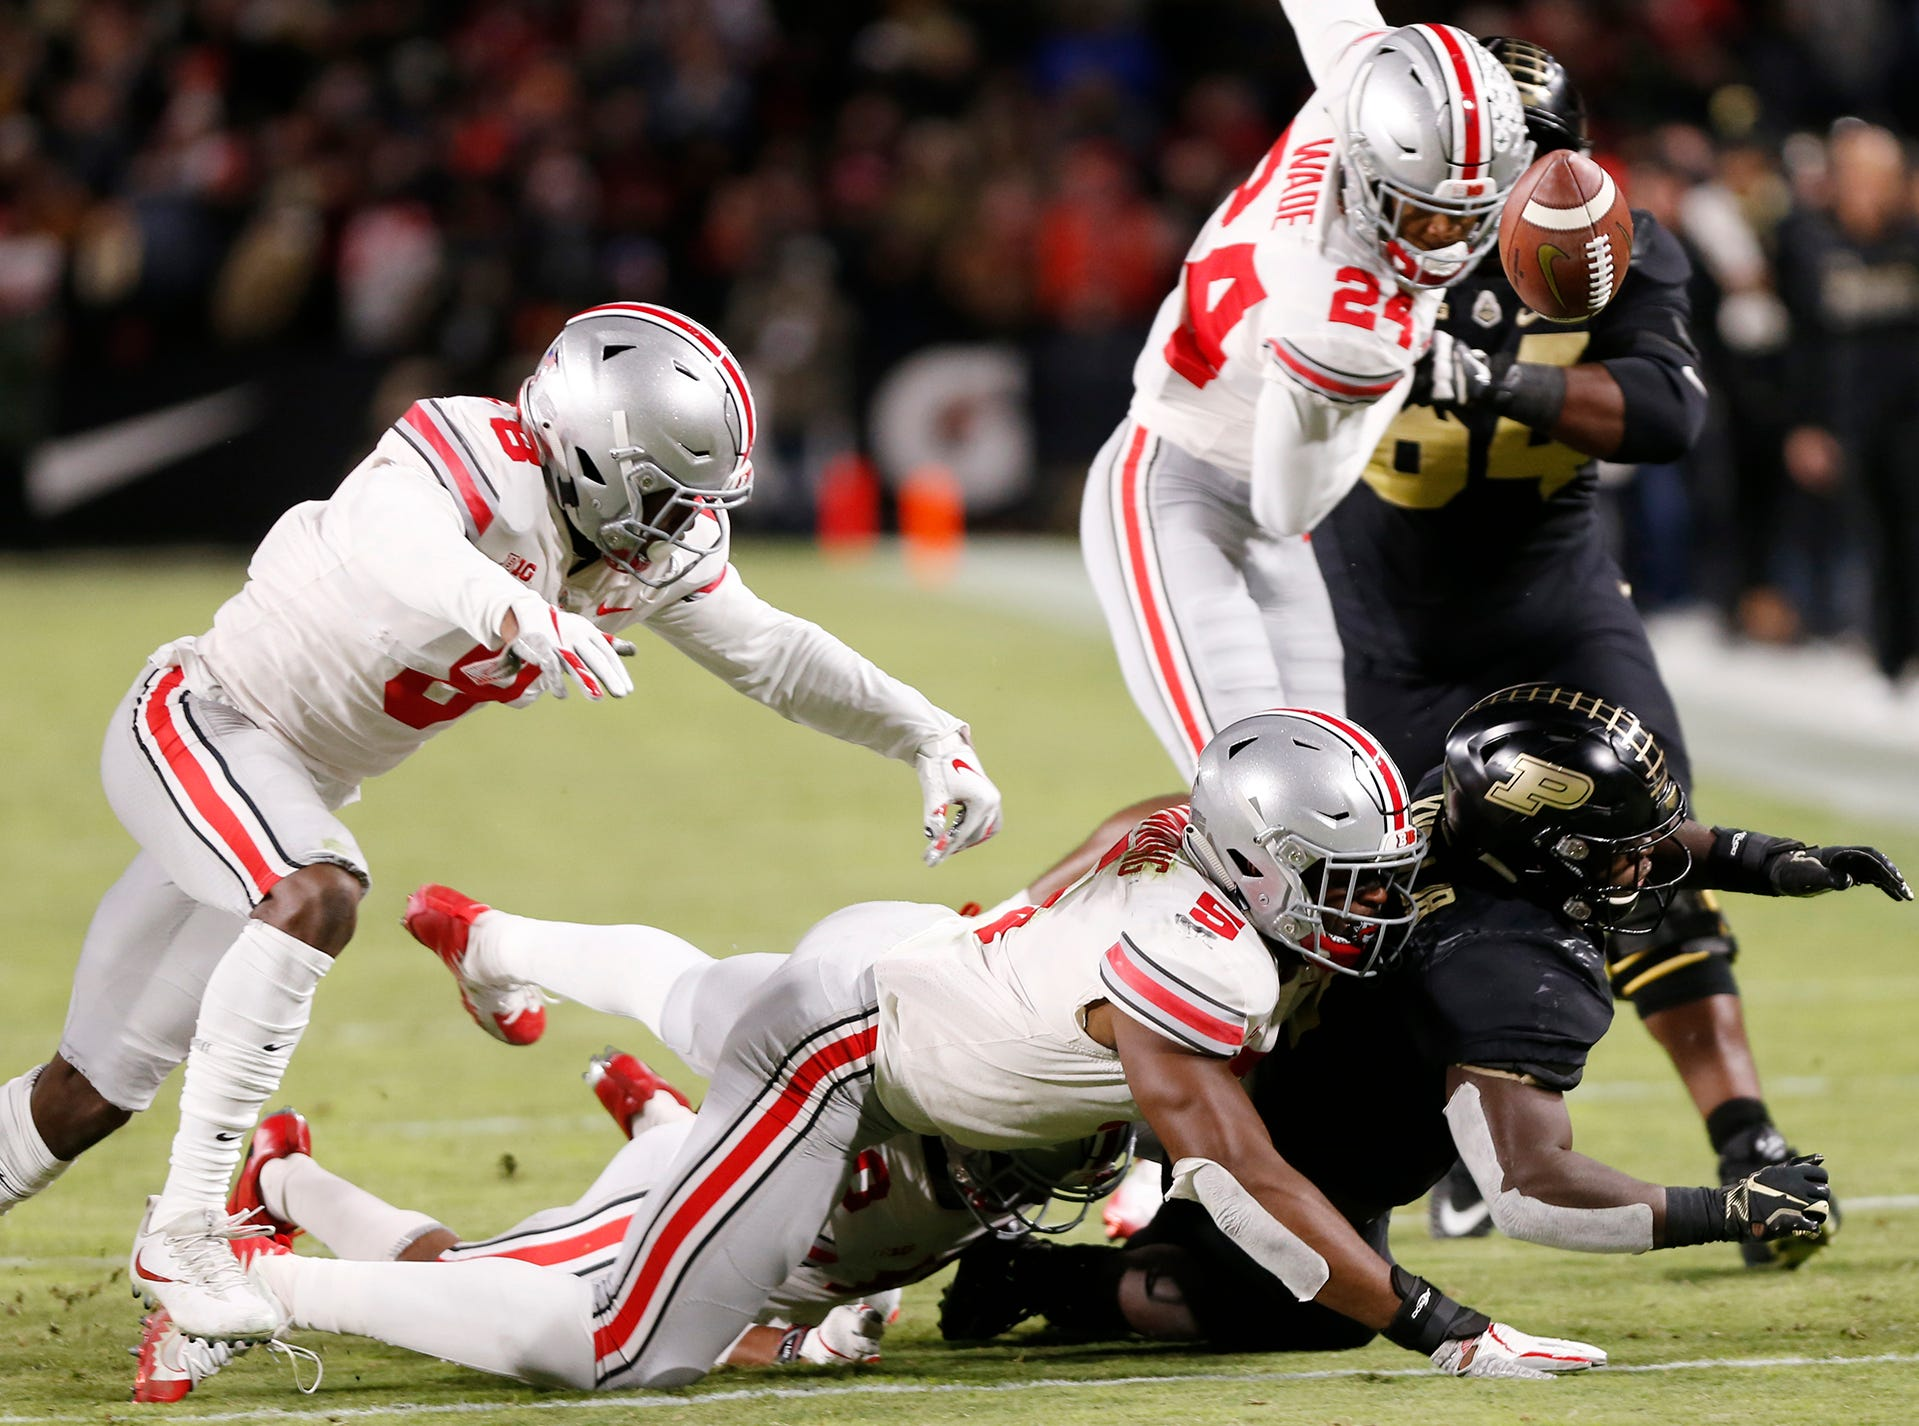 The ball pops out of the hands of D. J. Knox of Purdue as he is hit by Baron Browning of Ohio State Saturday, October 20, 2018, at Ross-Ade Stadium. Purdue maintained possession of the ball.